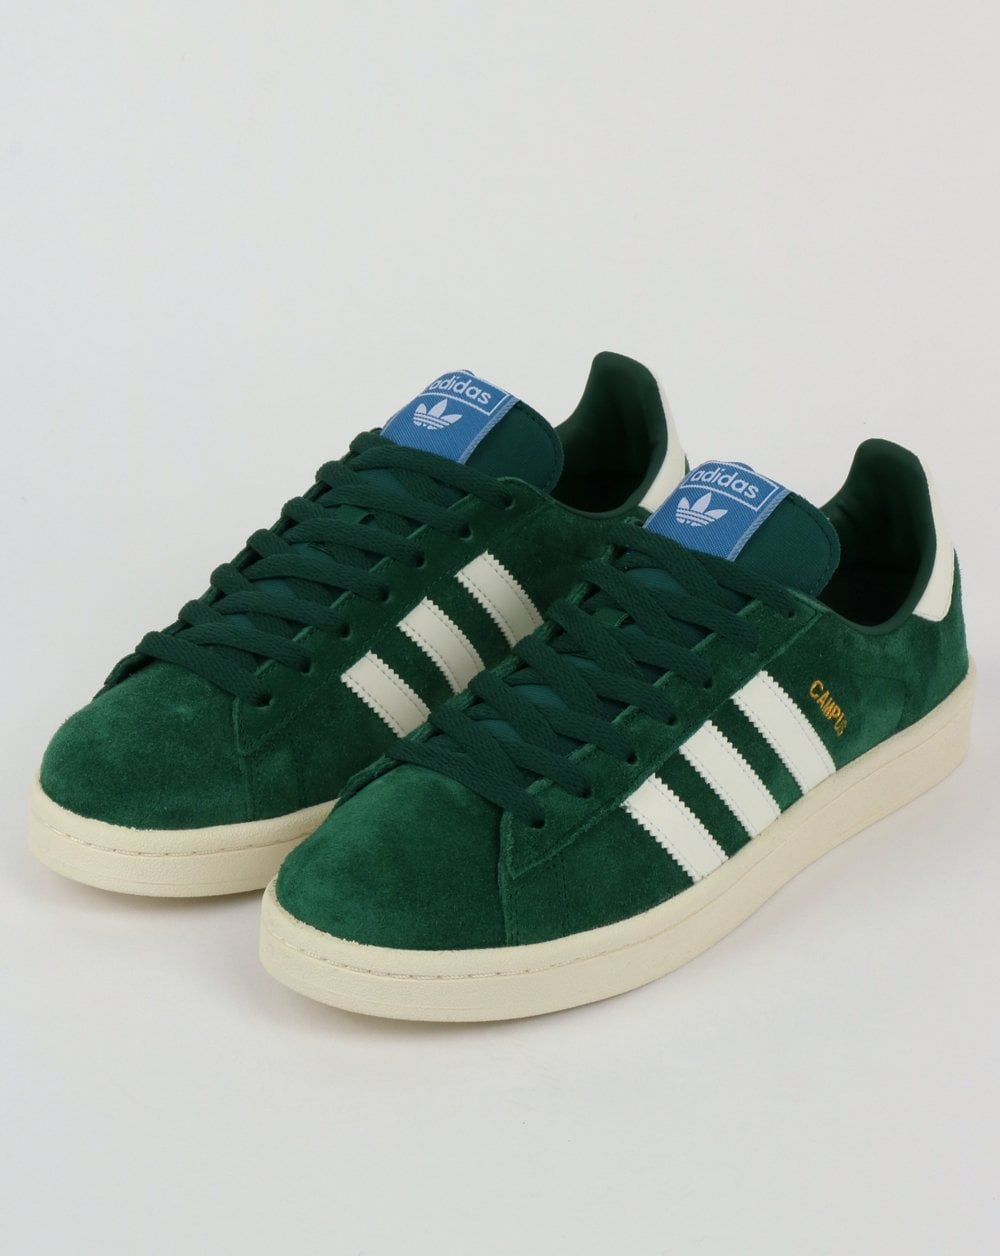 new concept cf95e 113c9 Adidas Campus Trainers Green,shoes,suede,originals